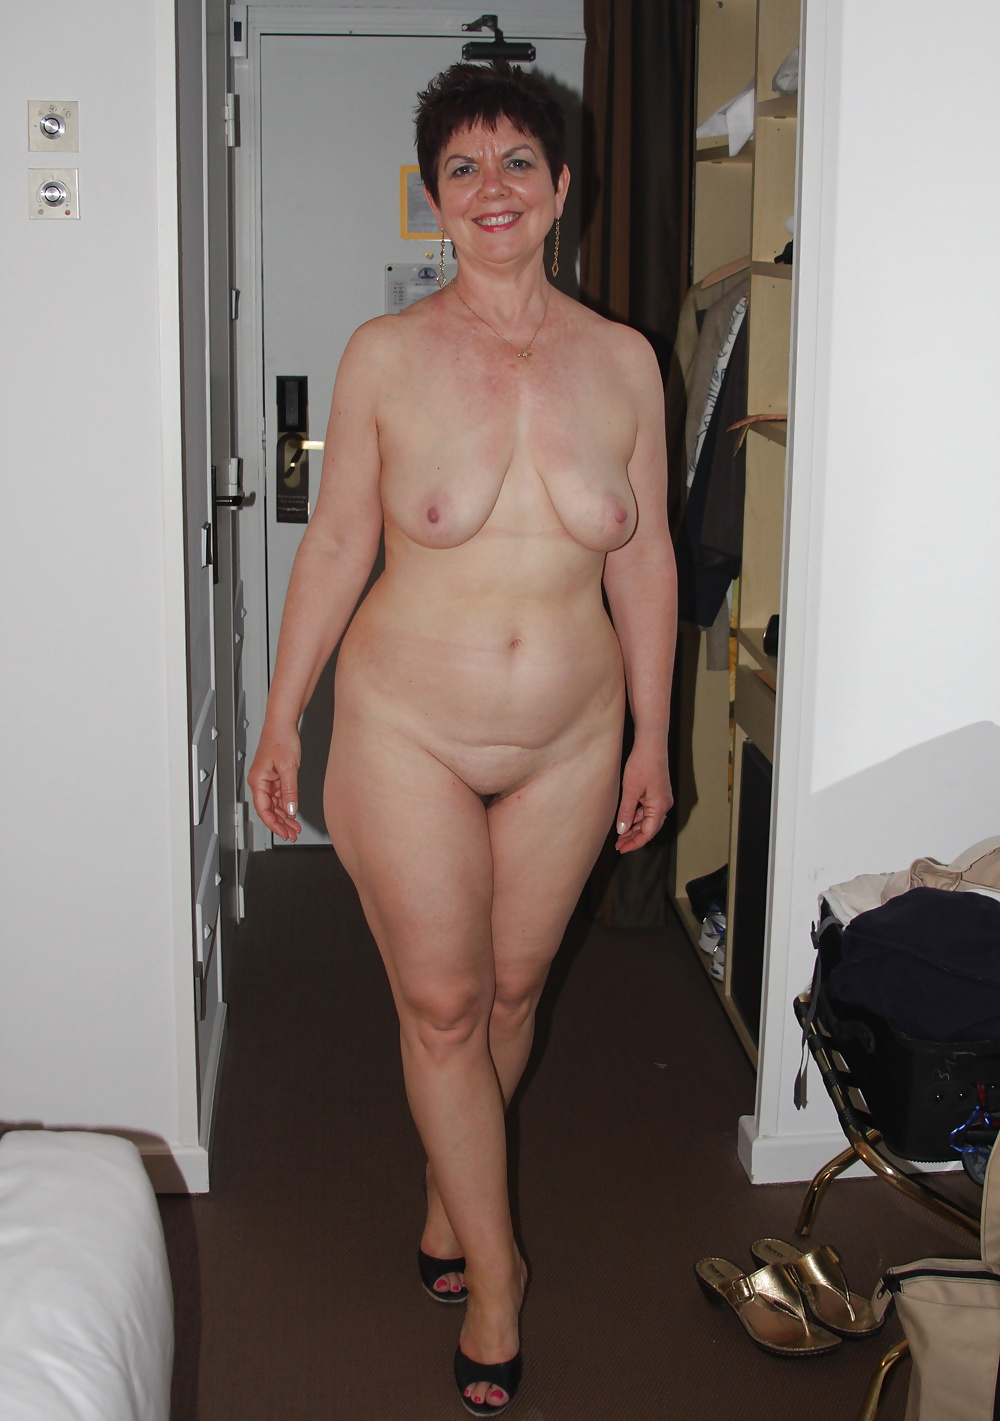 Amateur wife full frontal nude